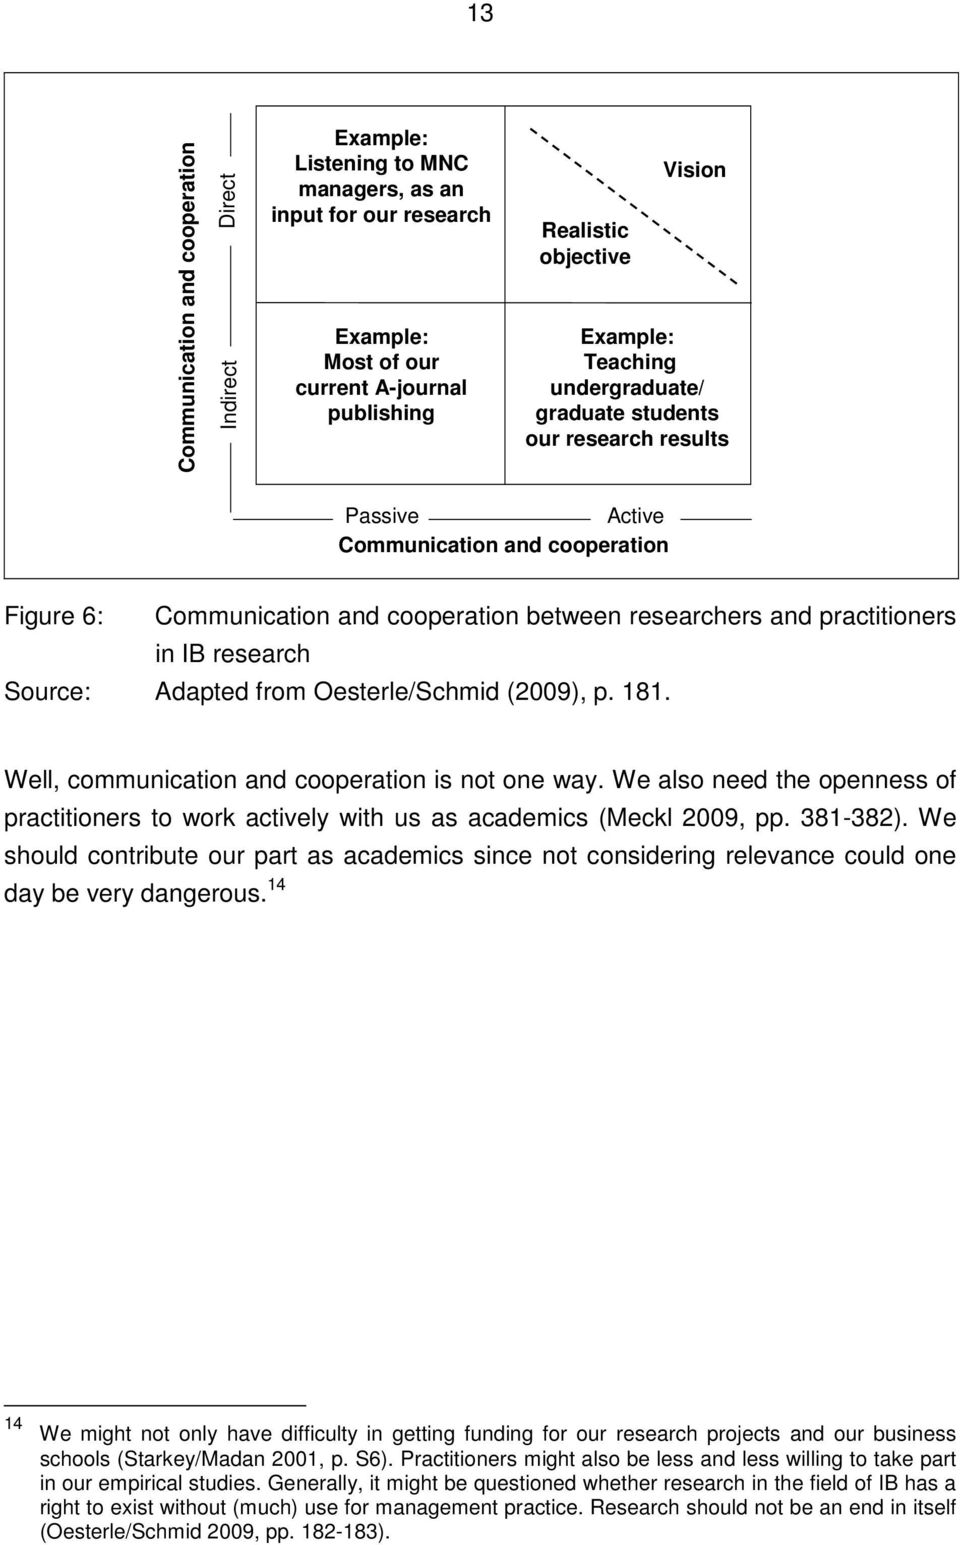 research Source: Adapted from Oesterle/Schmid (2009), p. 181. Well, communication and cooperation is not one way.